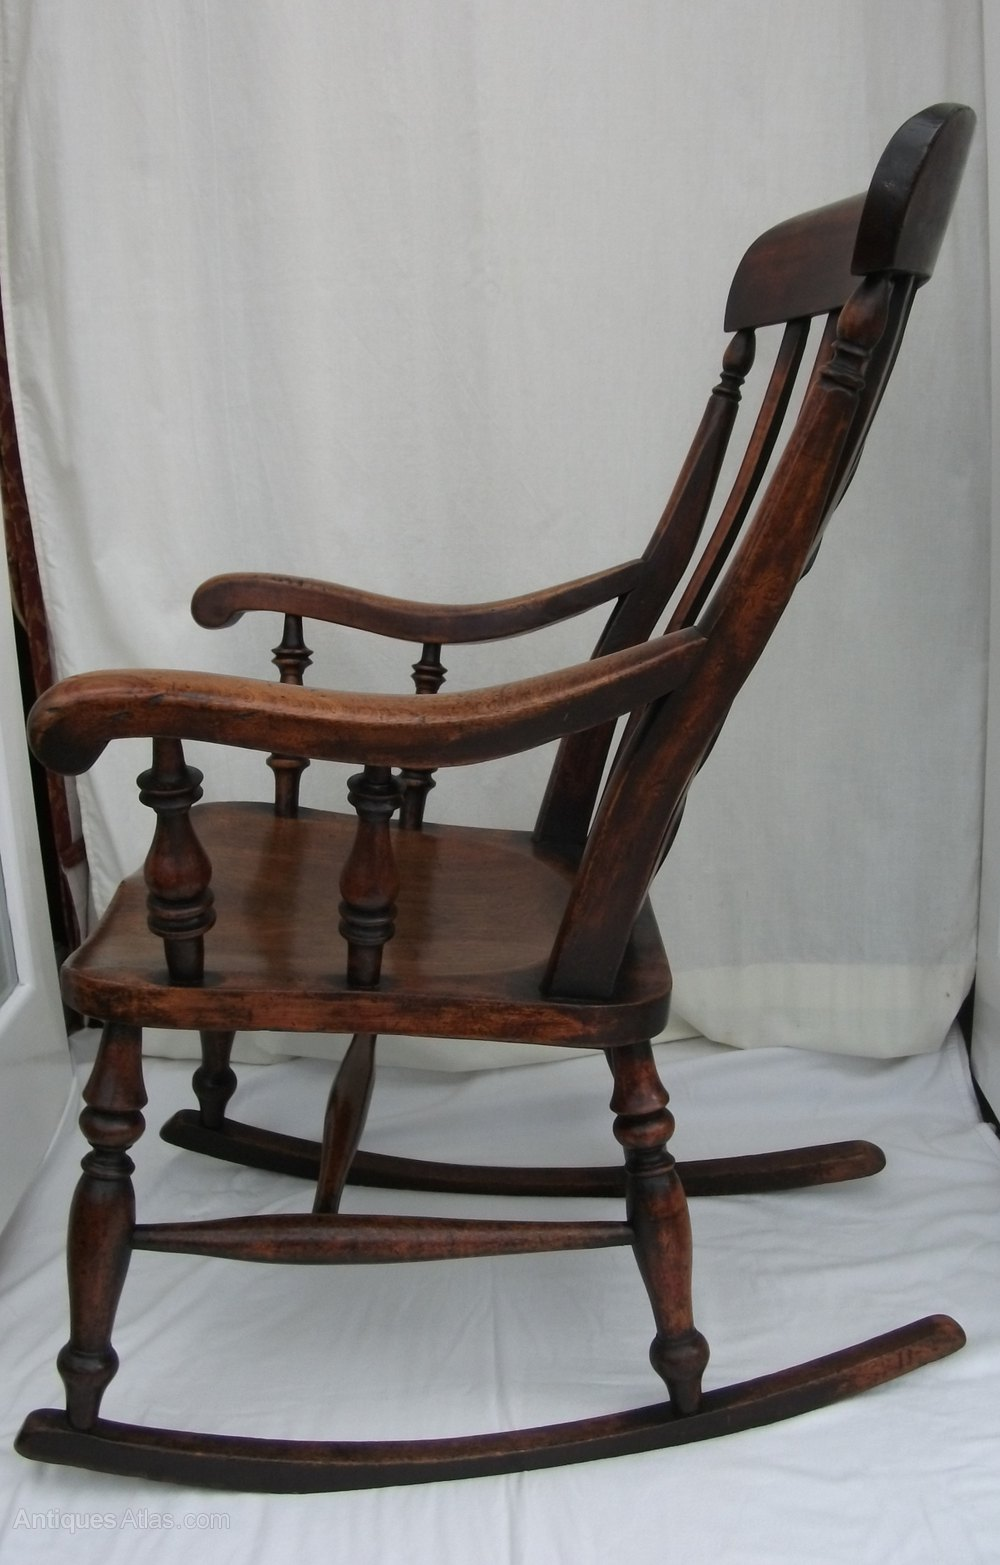 Antique Windsor Highback Rocking Chair Antique Windsor Chairs Windsor  Rocking Chair ... - Antique Windsor Highback Rocking Chair - Antiques Atlas